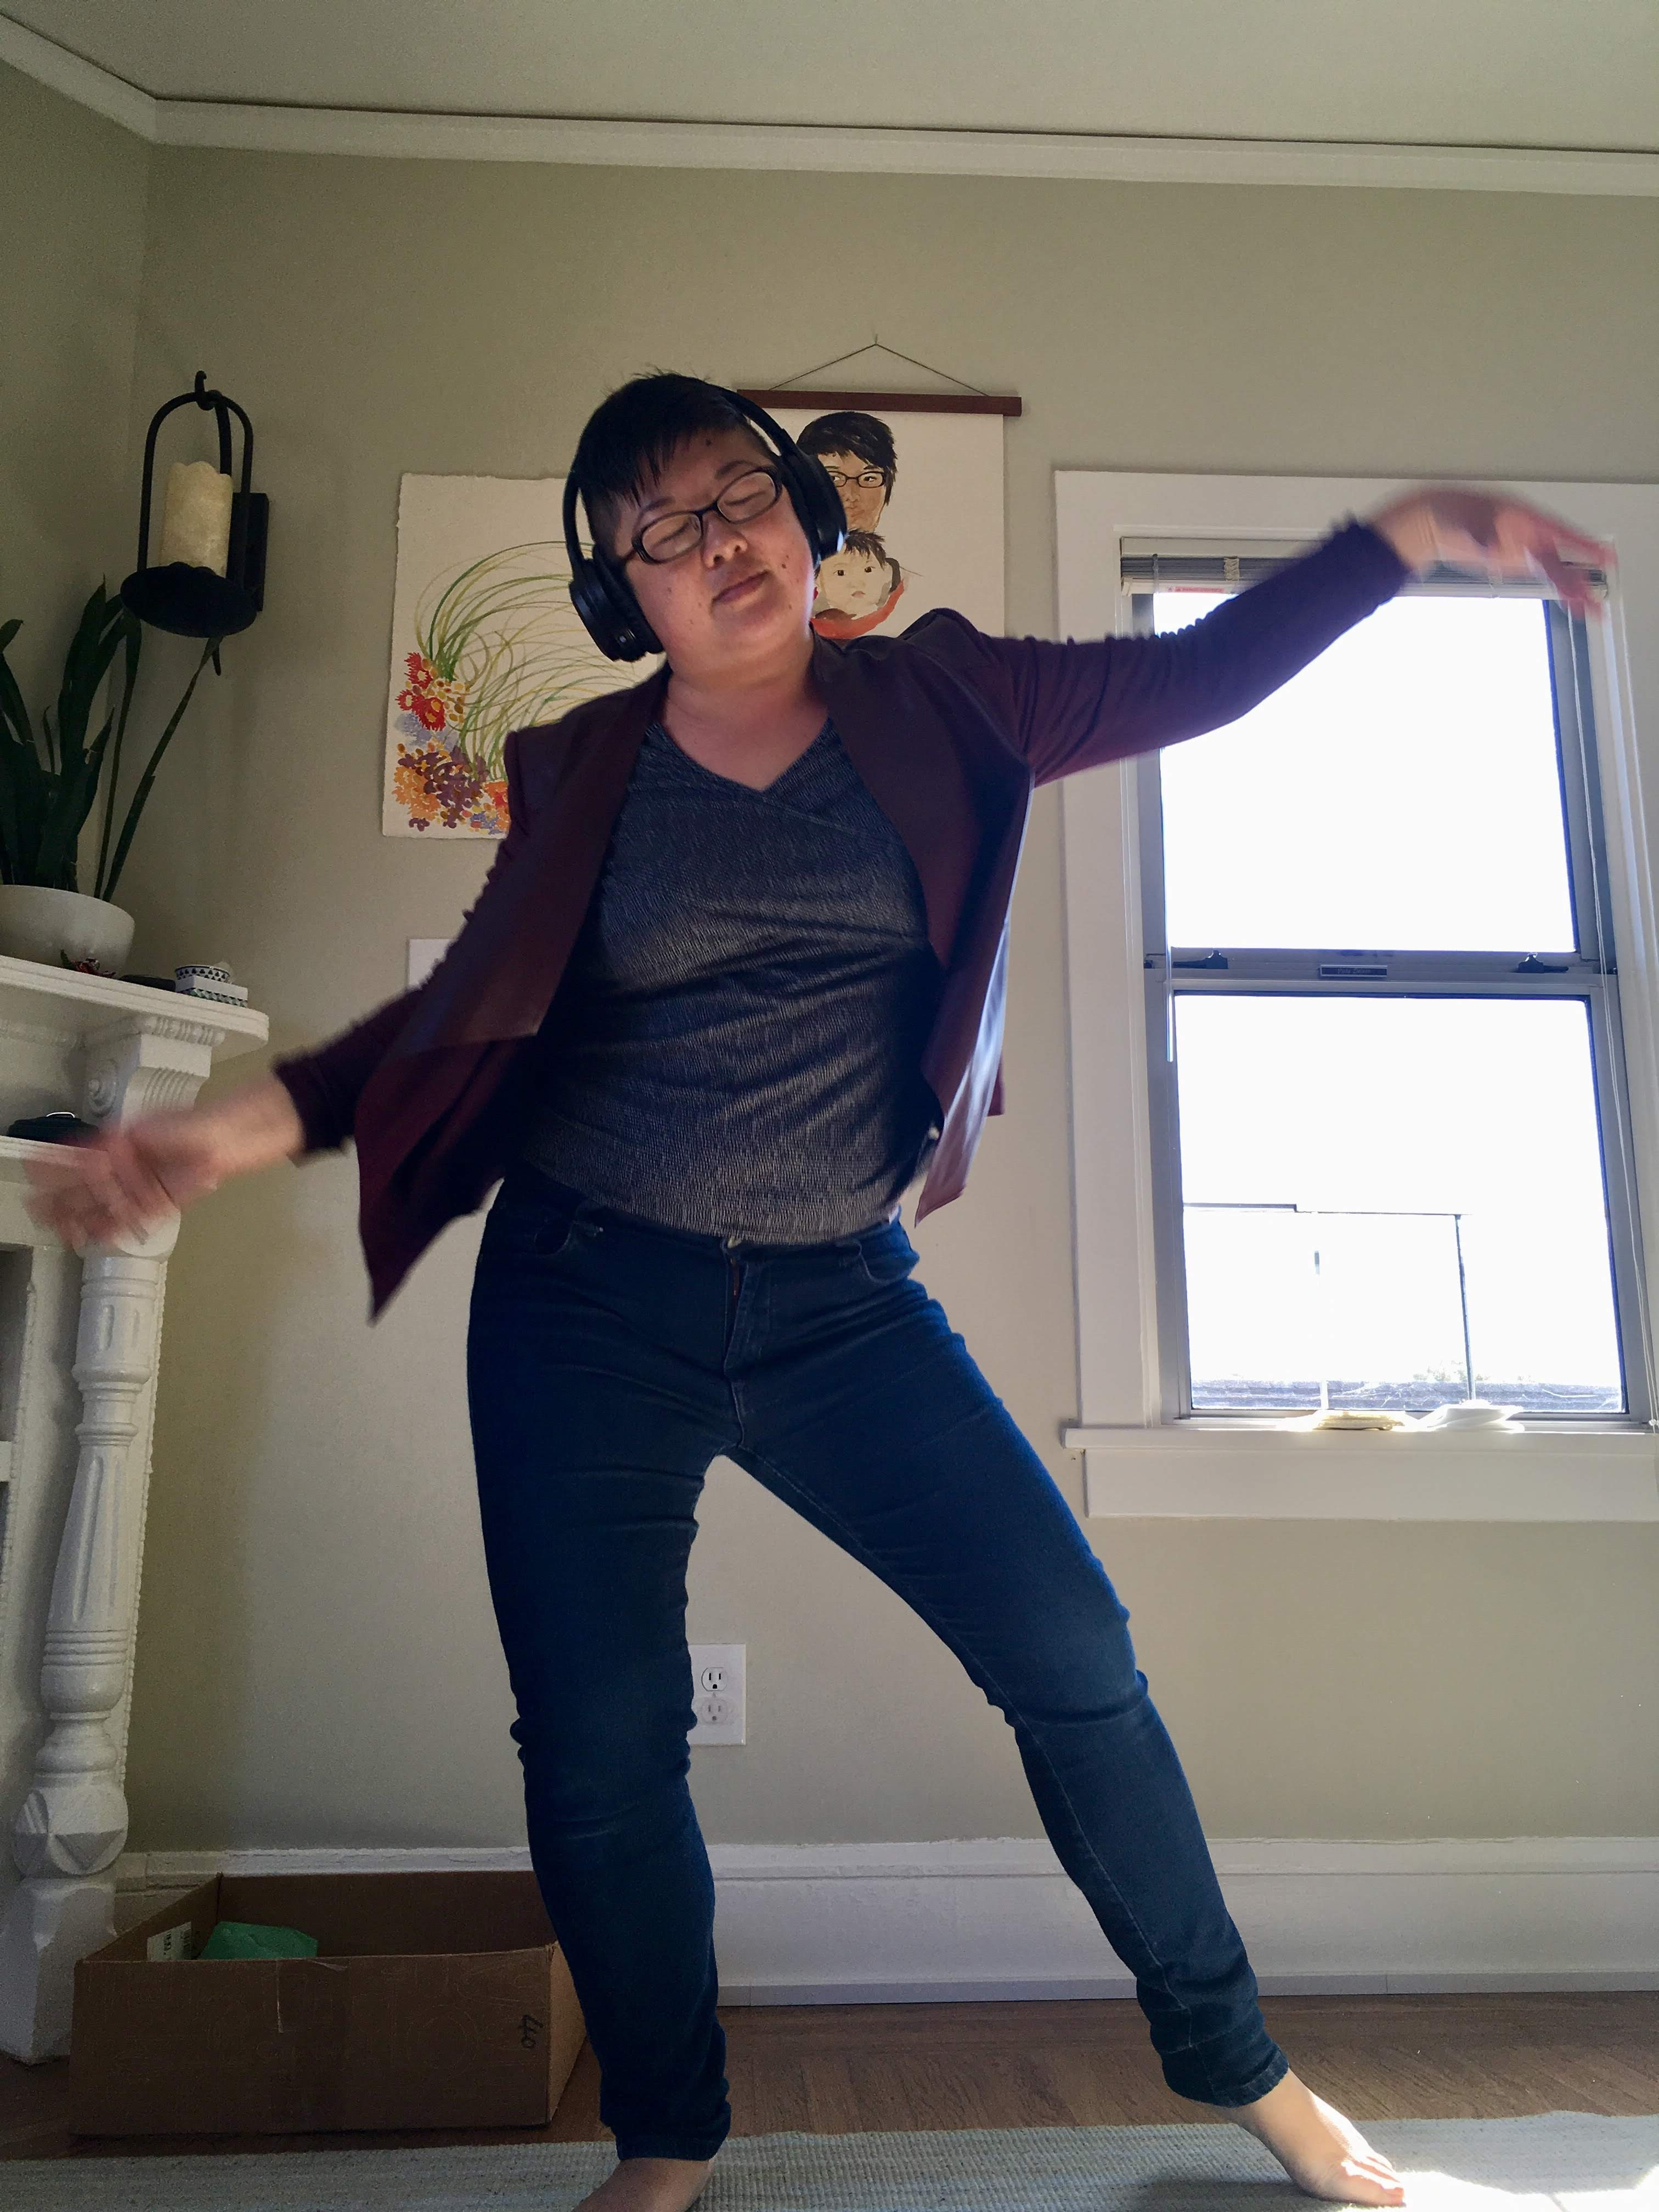 Short-haired, glasses-and-headphones-wearing Asian woman dances indoors